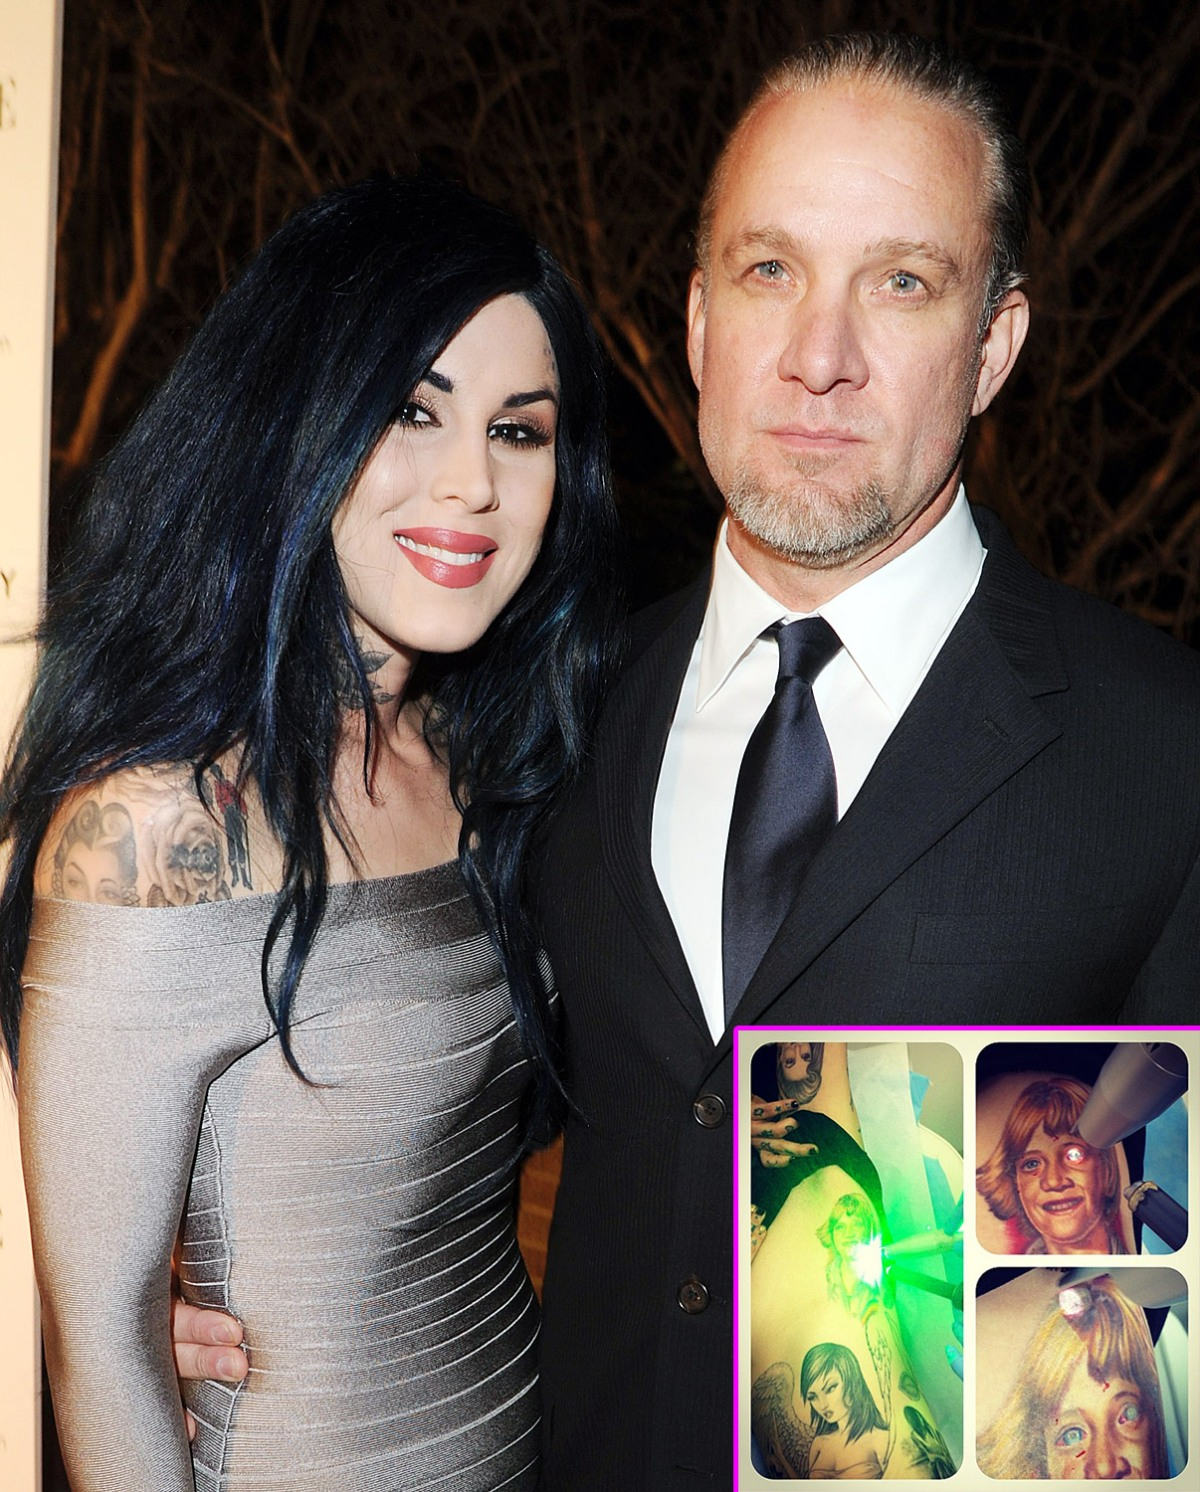 Brian Austin Green Girlfriends Awesome celebrities who got tattoos for love